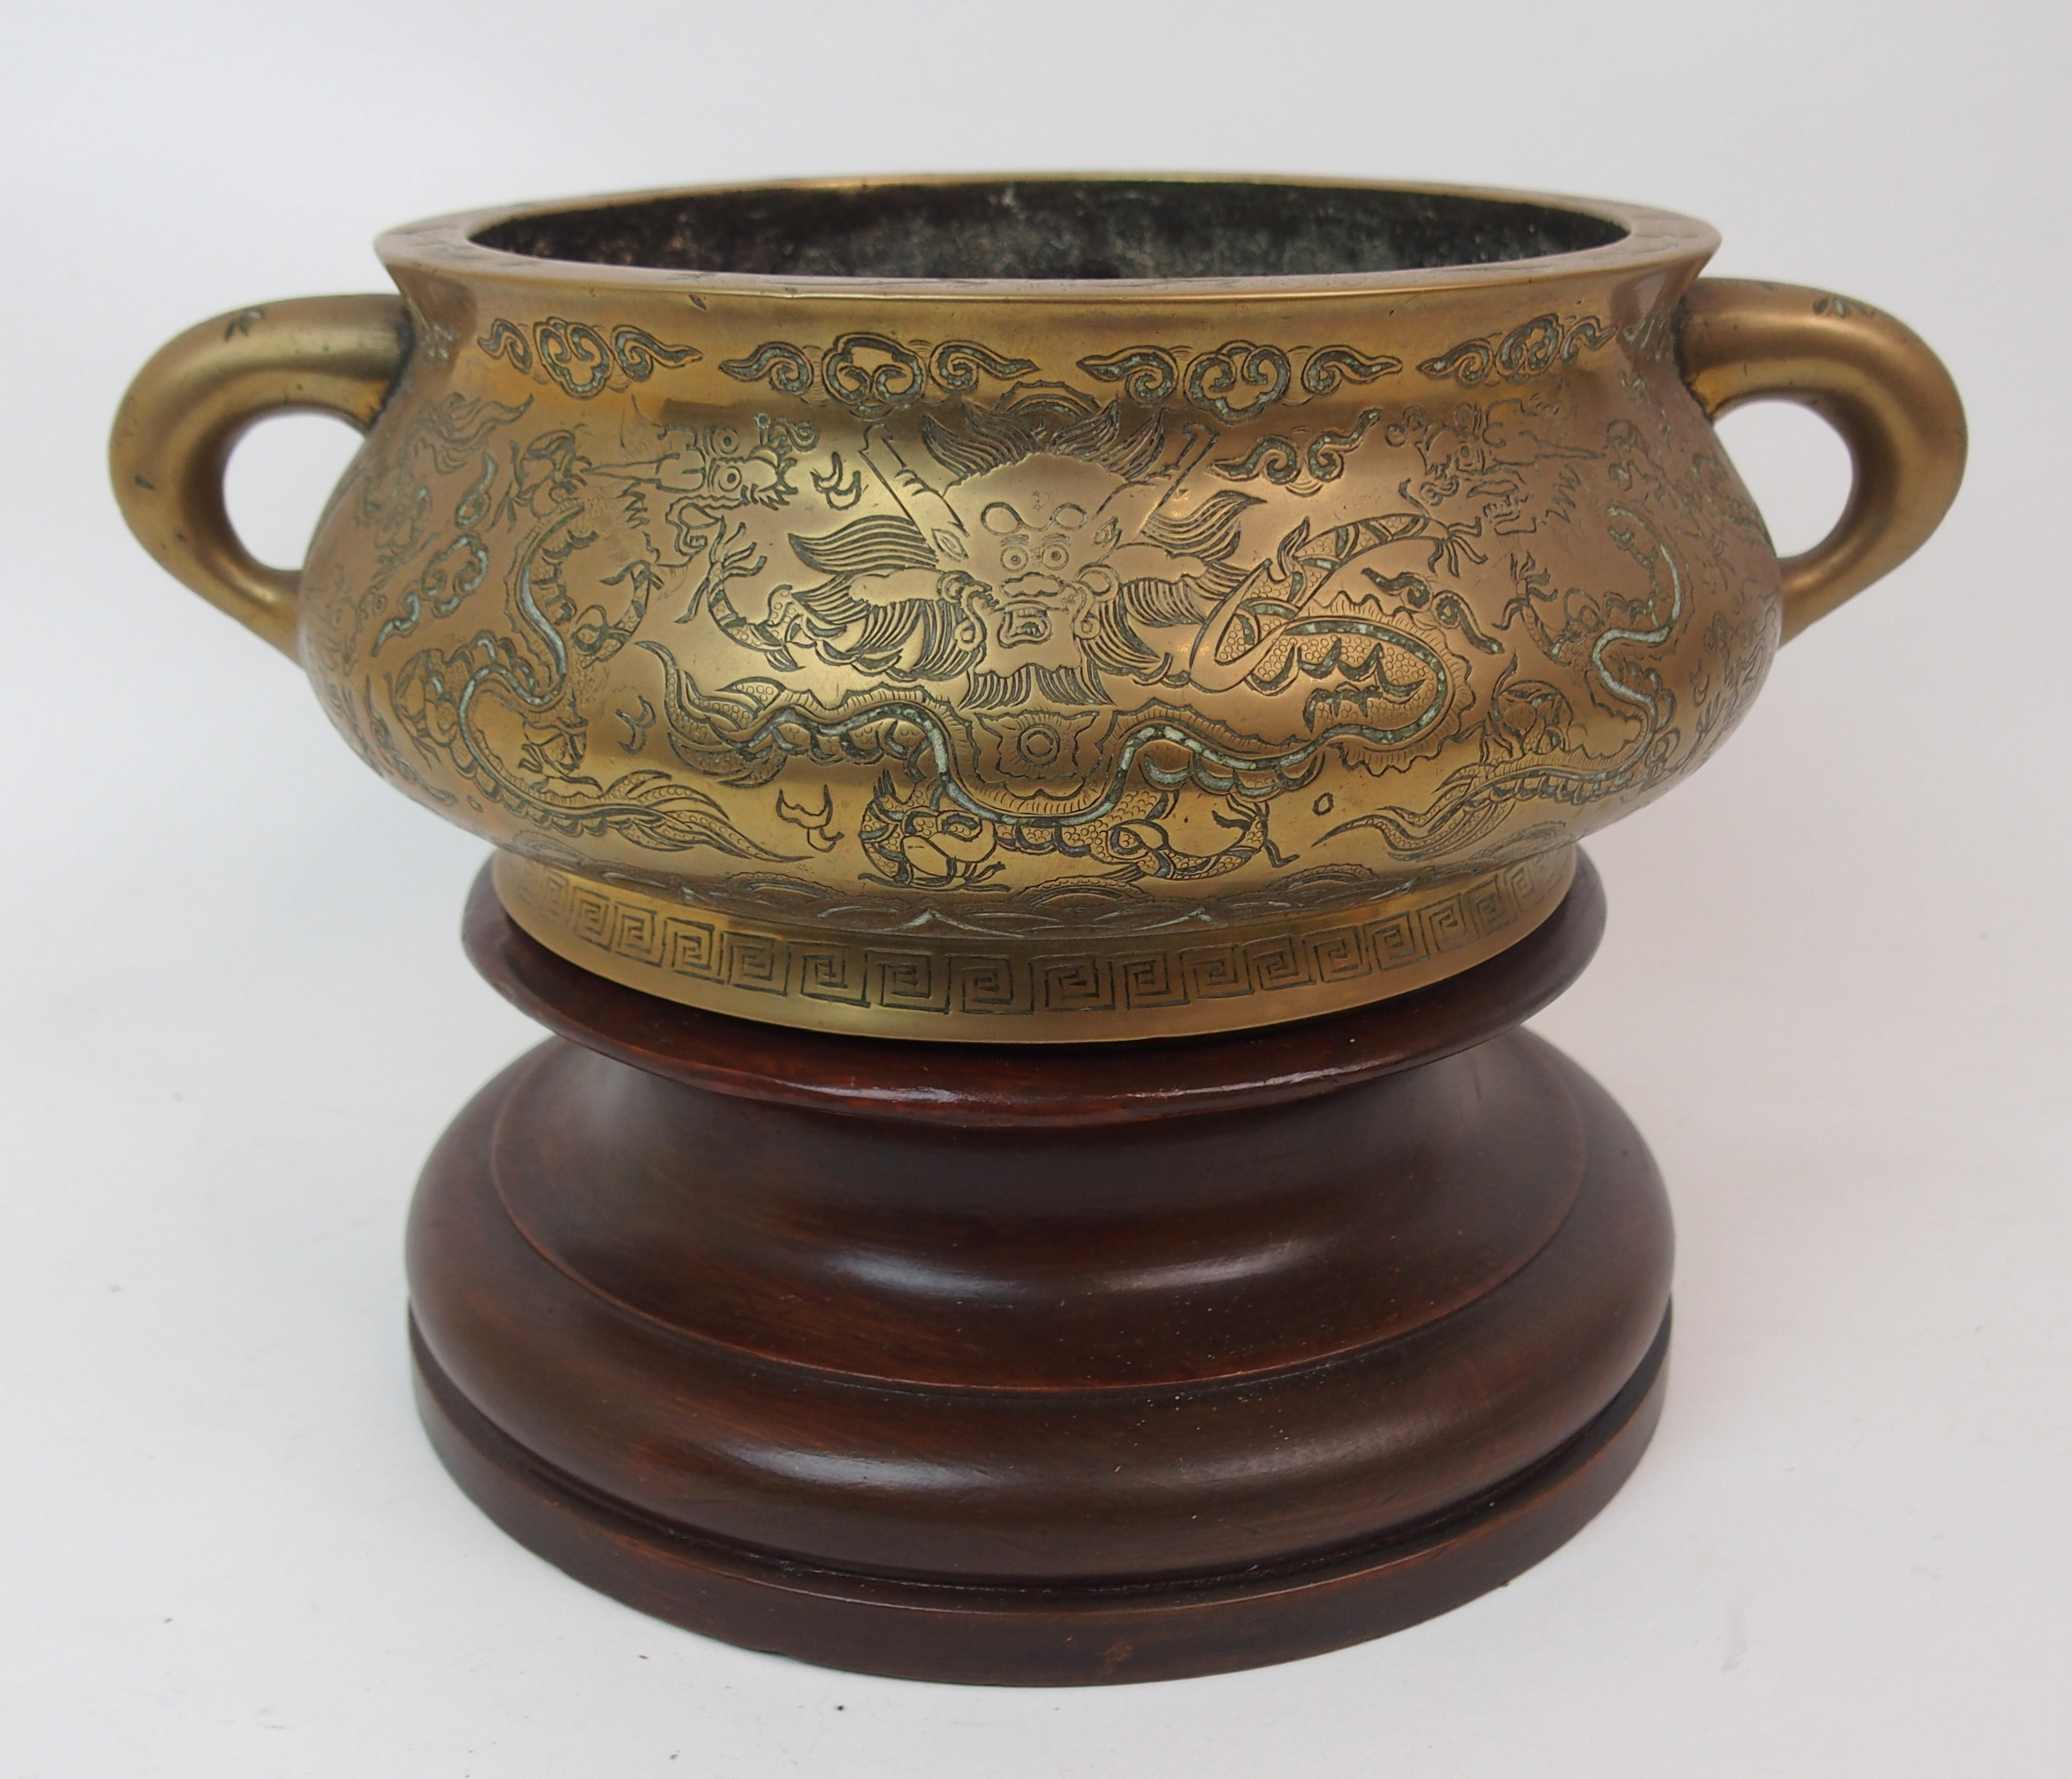 Lot 60 - A CHINESE BRASS TWO-HANDLED CENSER engraved allover with dragons, waves and clouds above a key-